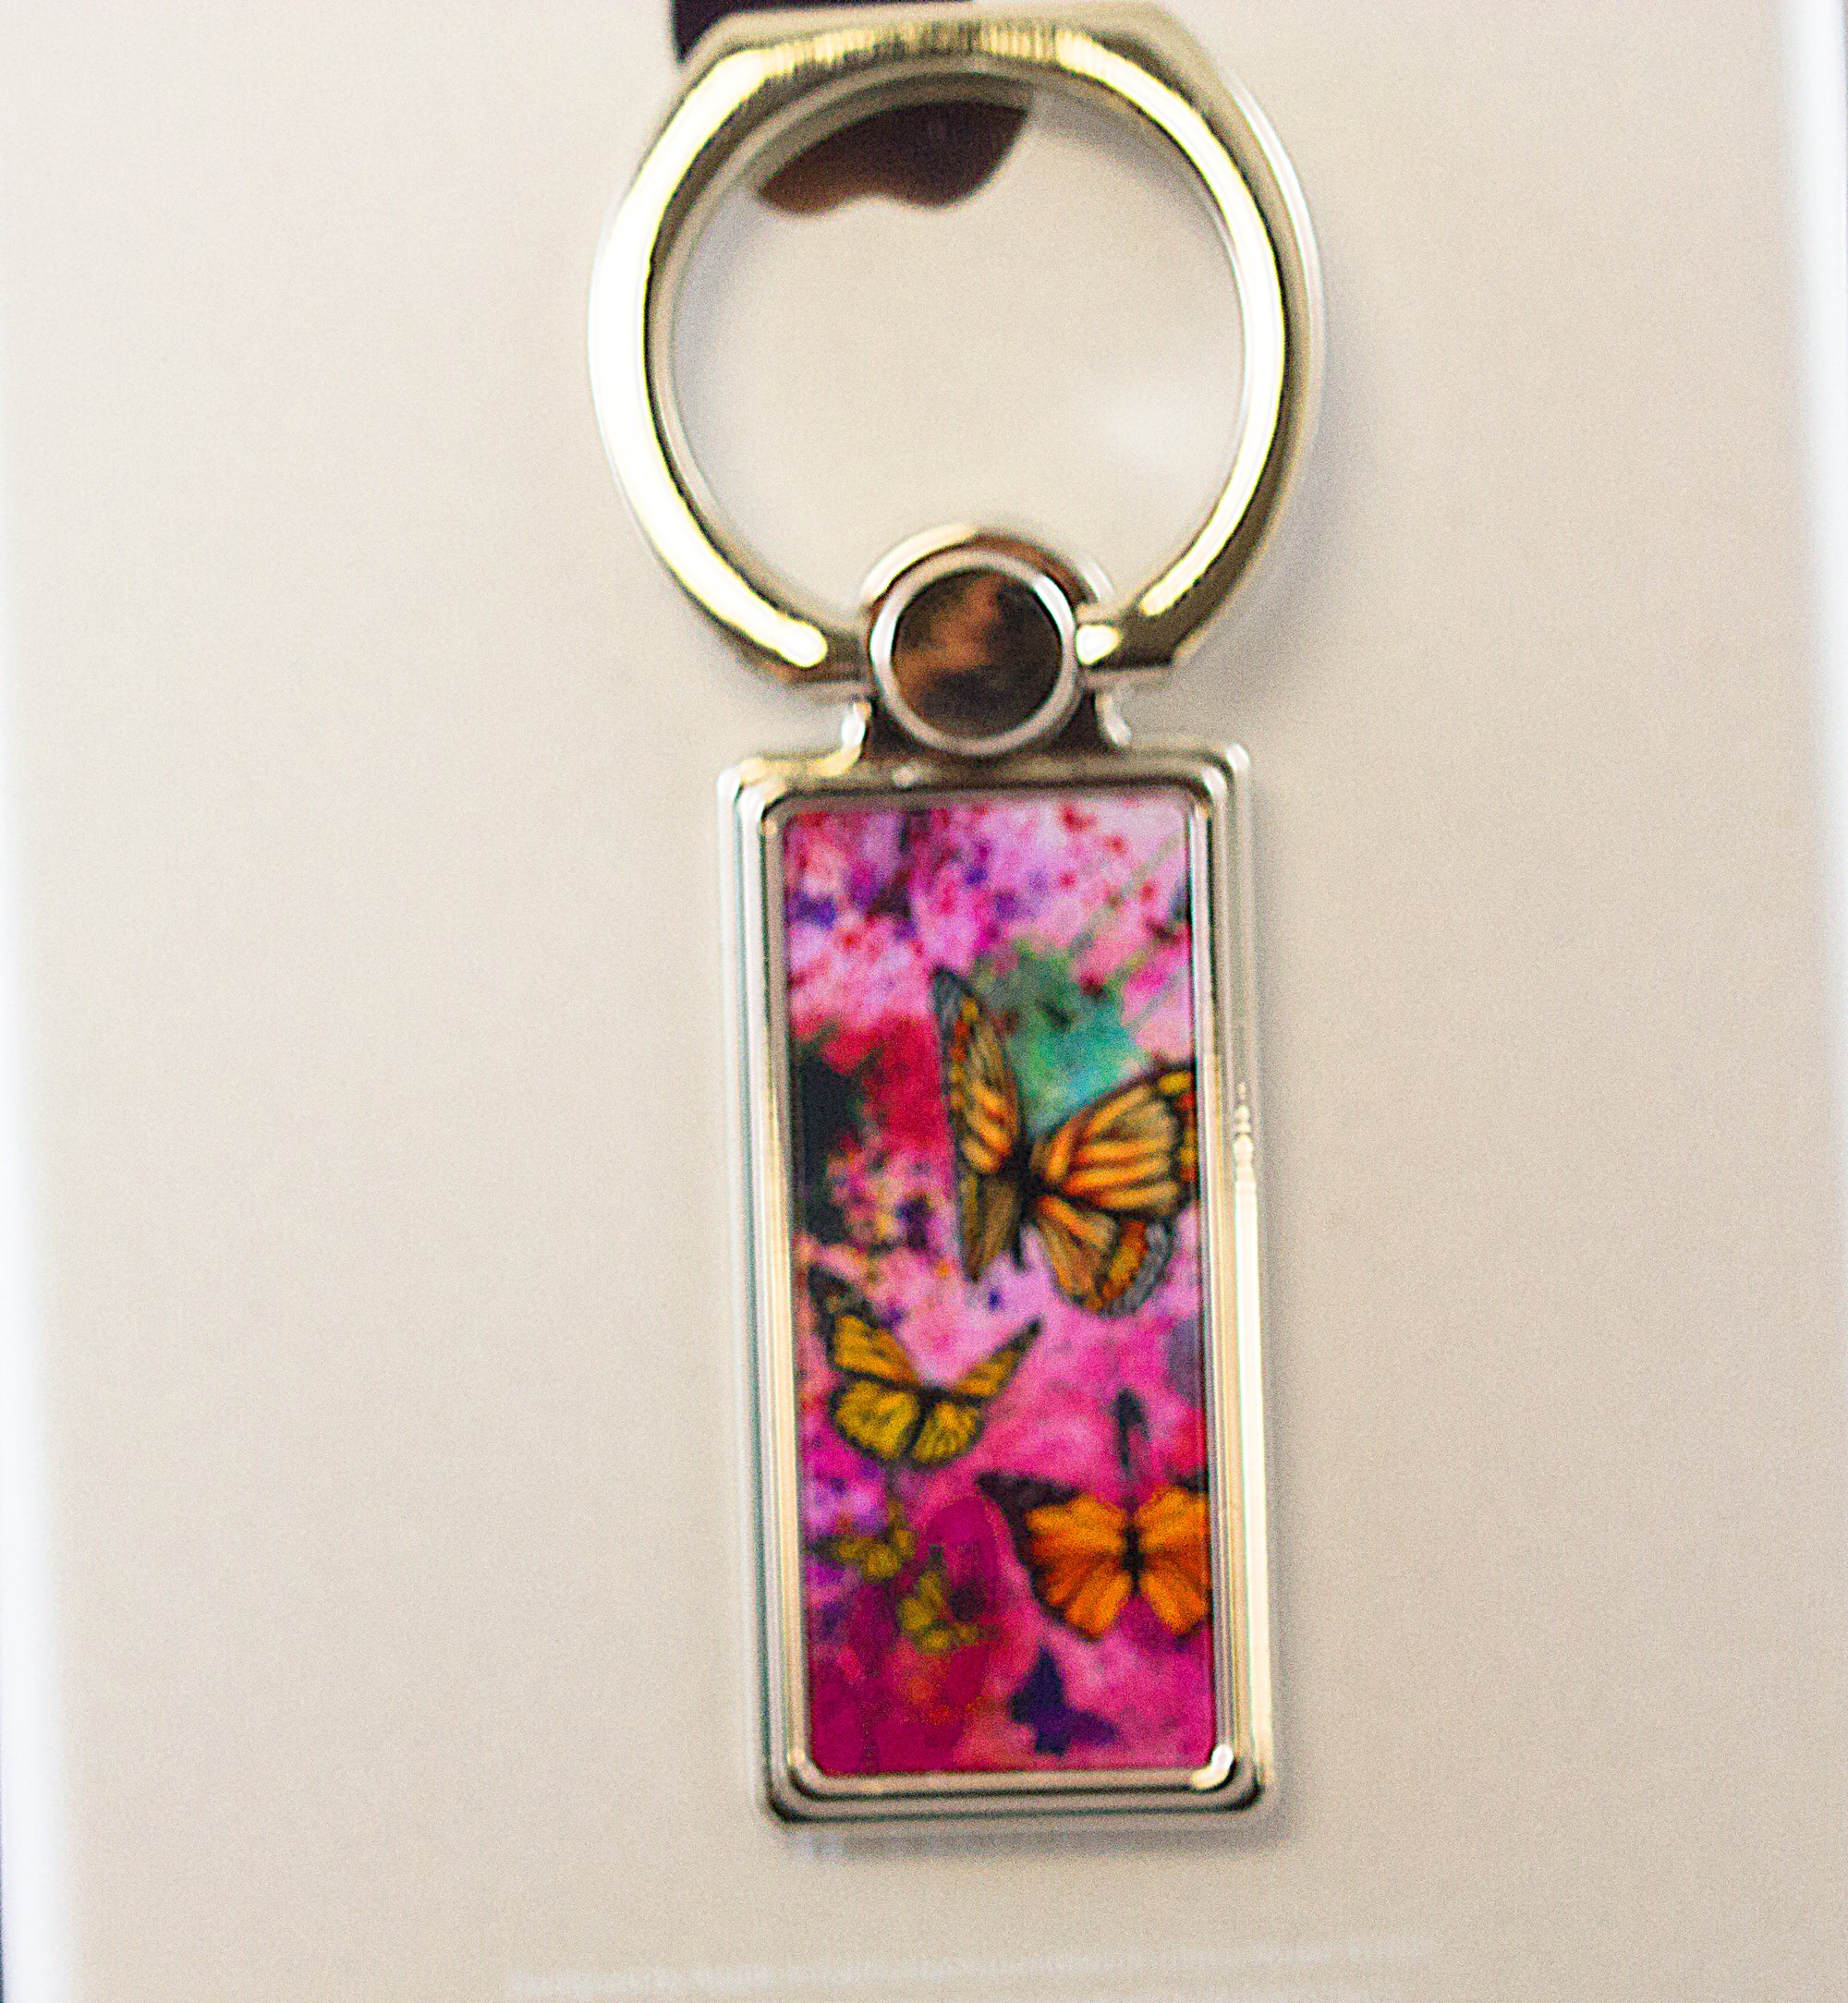 BUTTERFLY ABSTRACT WATERCOLORFREEDOM -Phone Ring Holder - Aspireimaginary